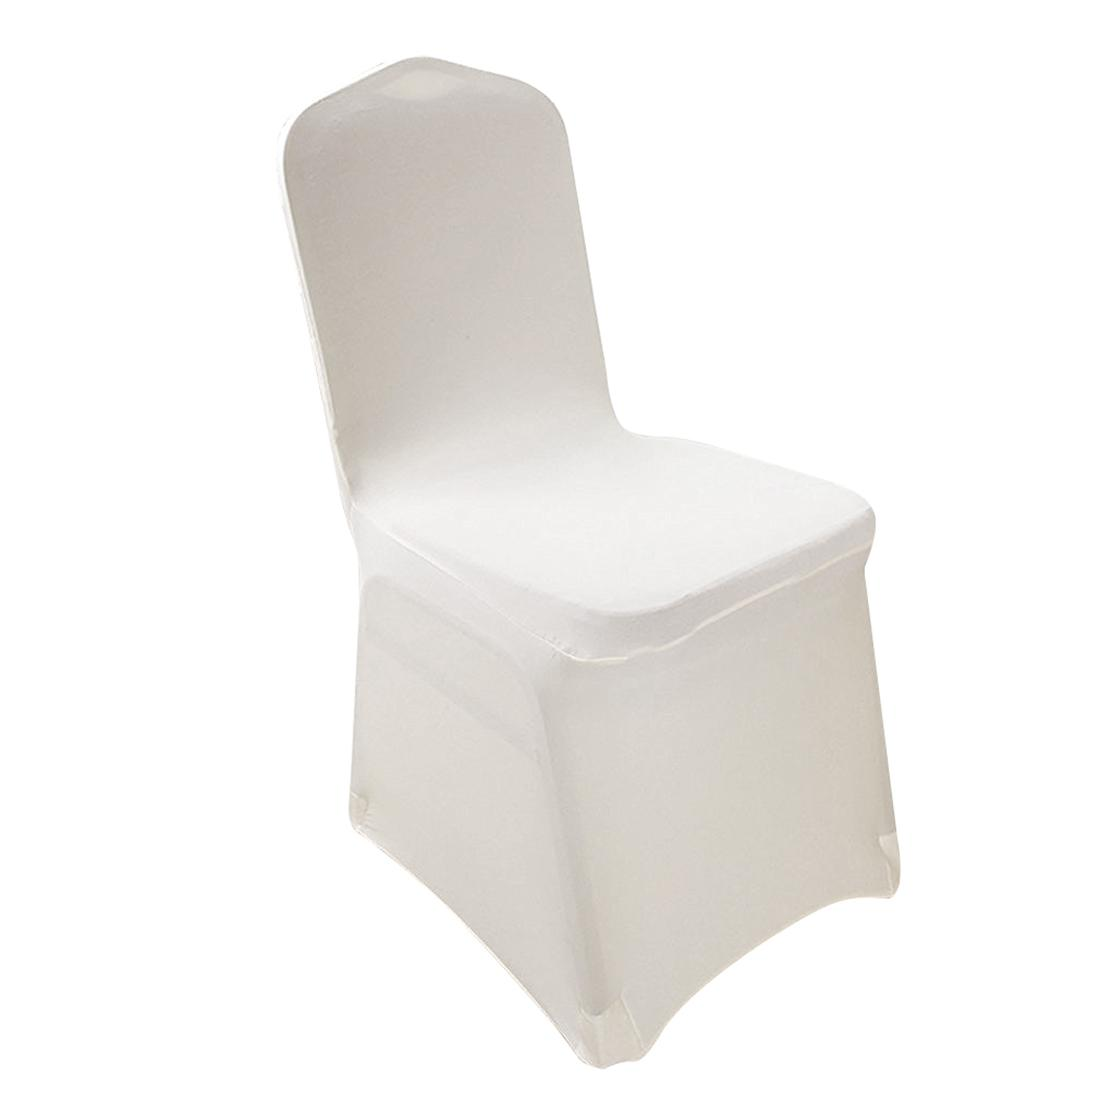 6 Pieces Elegant Stretch Strap-free Chair Covers Bi-Elastic Chair Cover made of Elastane for banquet hall